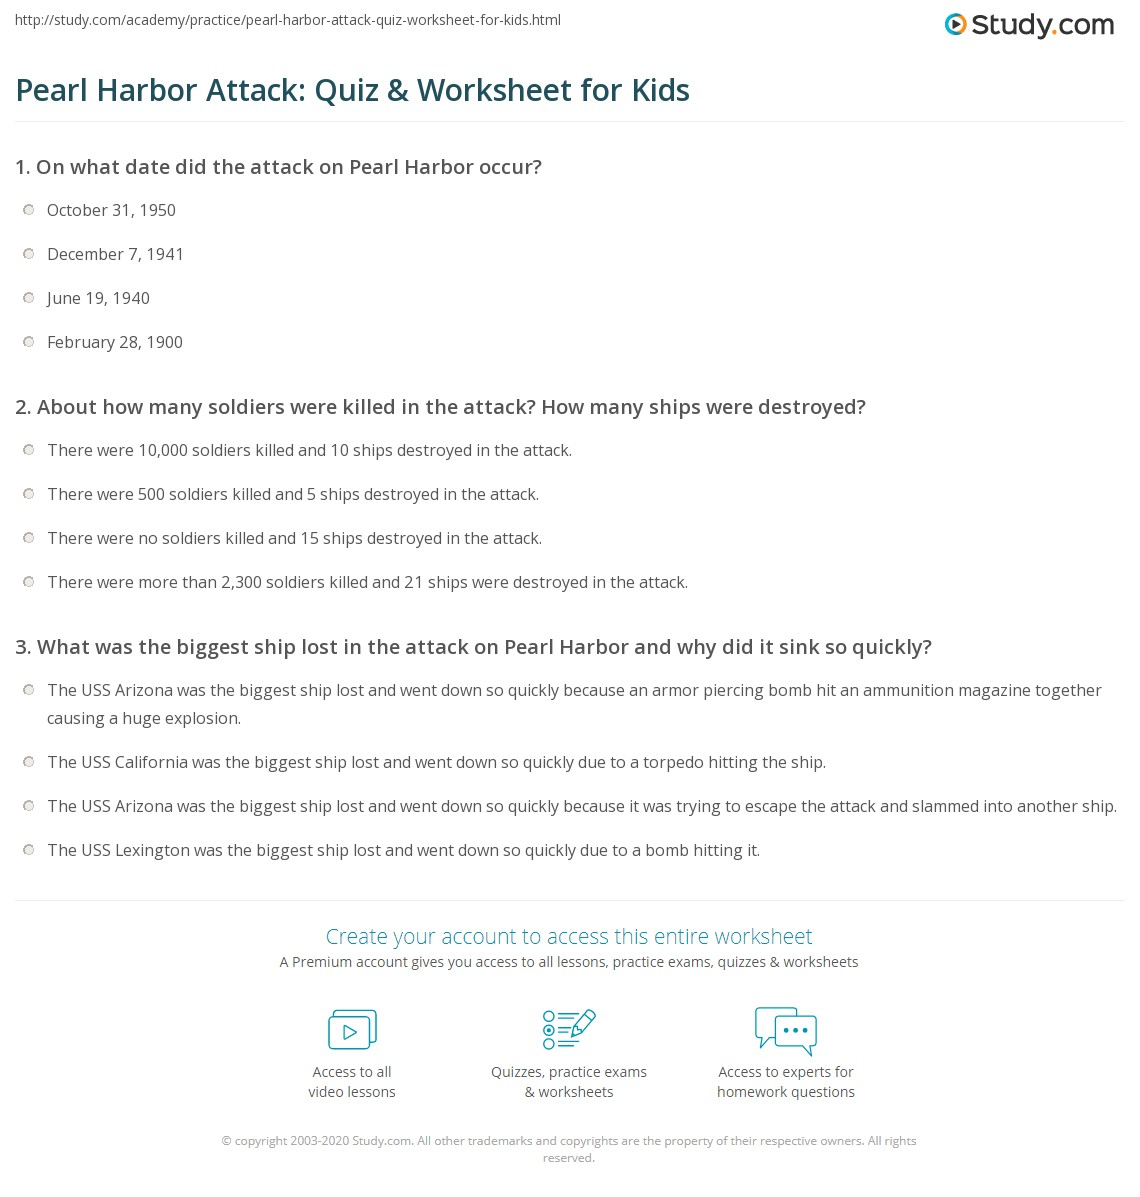 Worksheets Pearl Harbor Worksheet pearl harbor attack quiz worksheet for kids study com print facts lesson worksheet